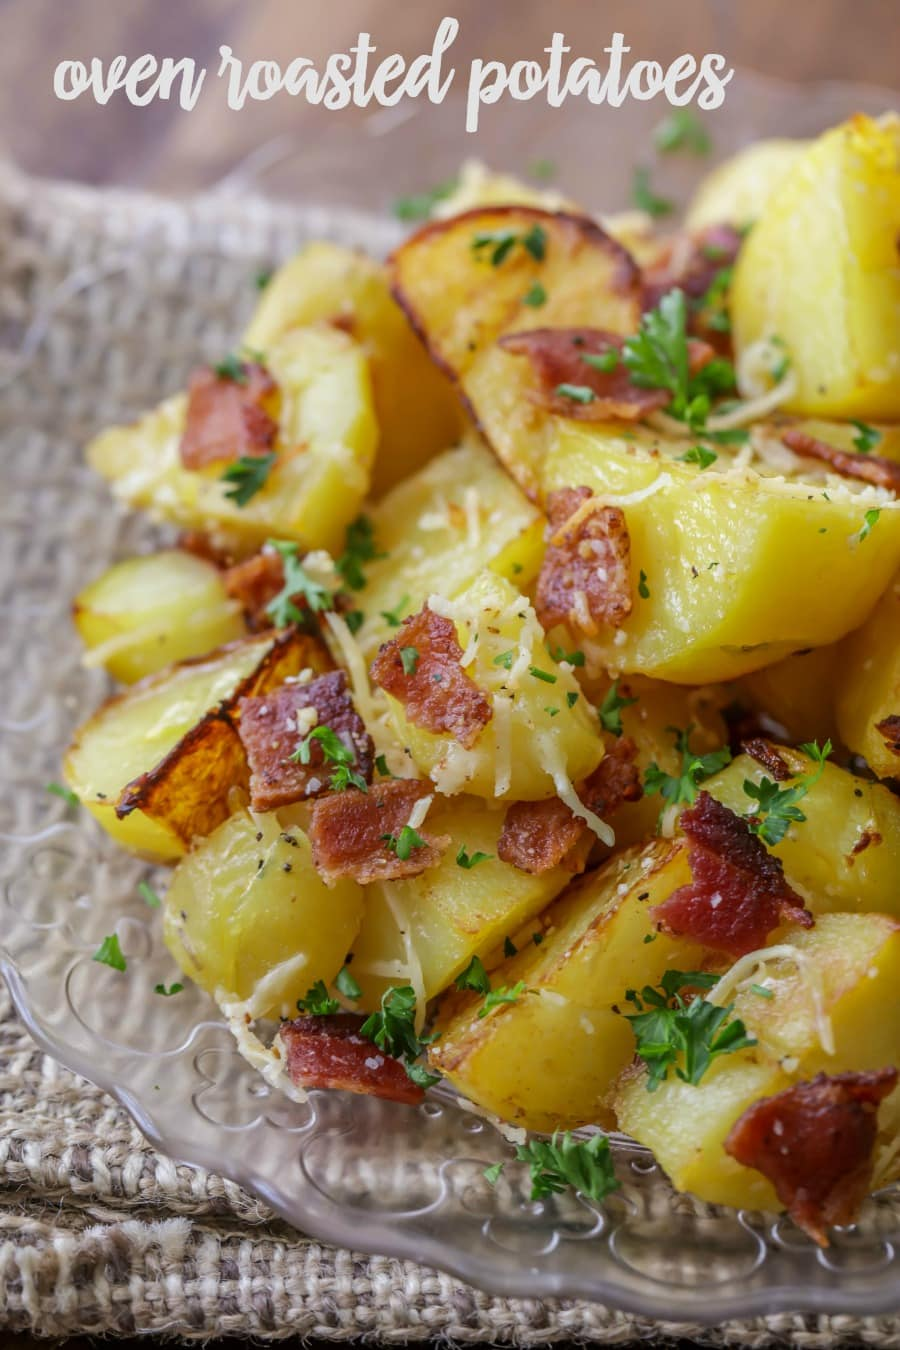 These Oven Roasted Potatoes are flavorful and full of cheese and bacon making them the perfect side dish.